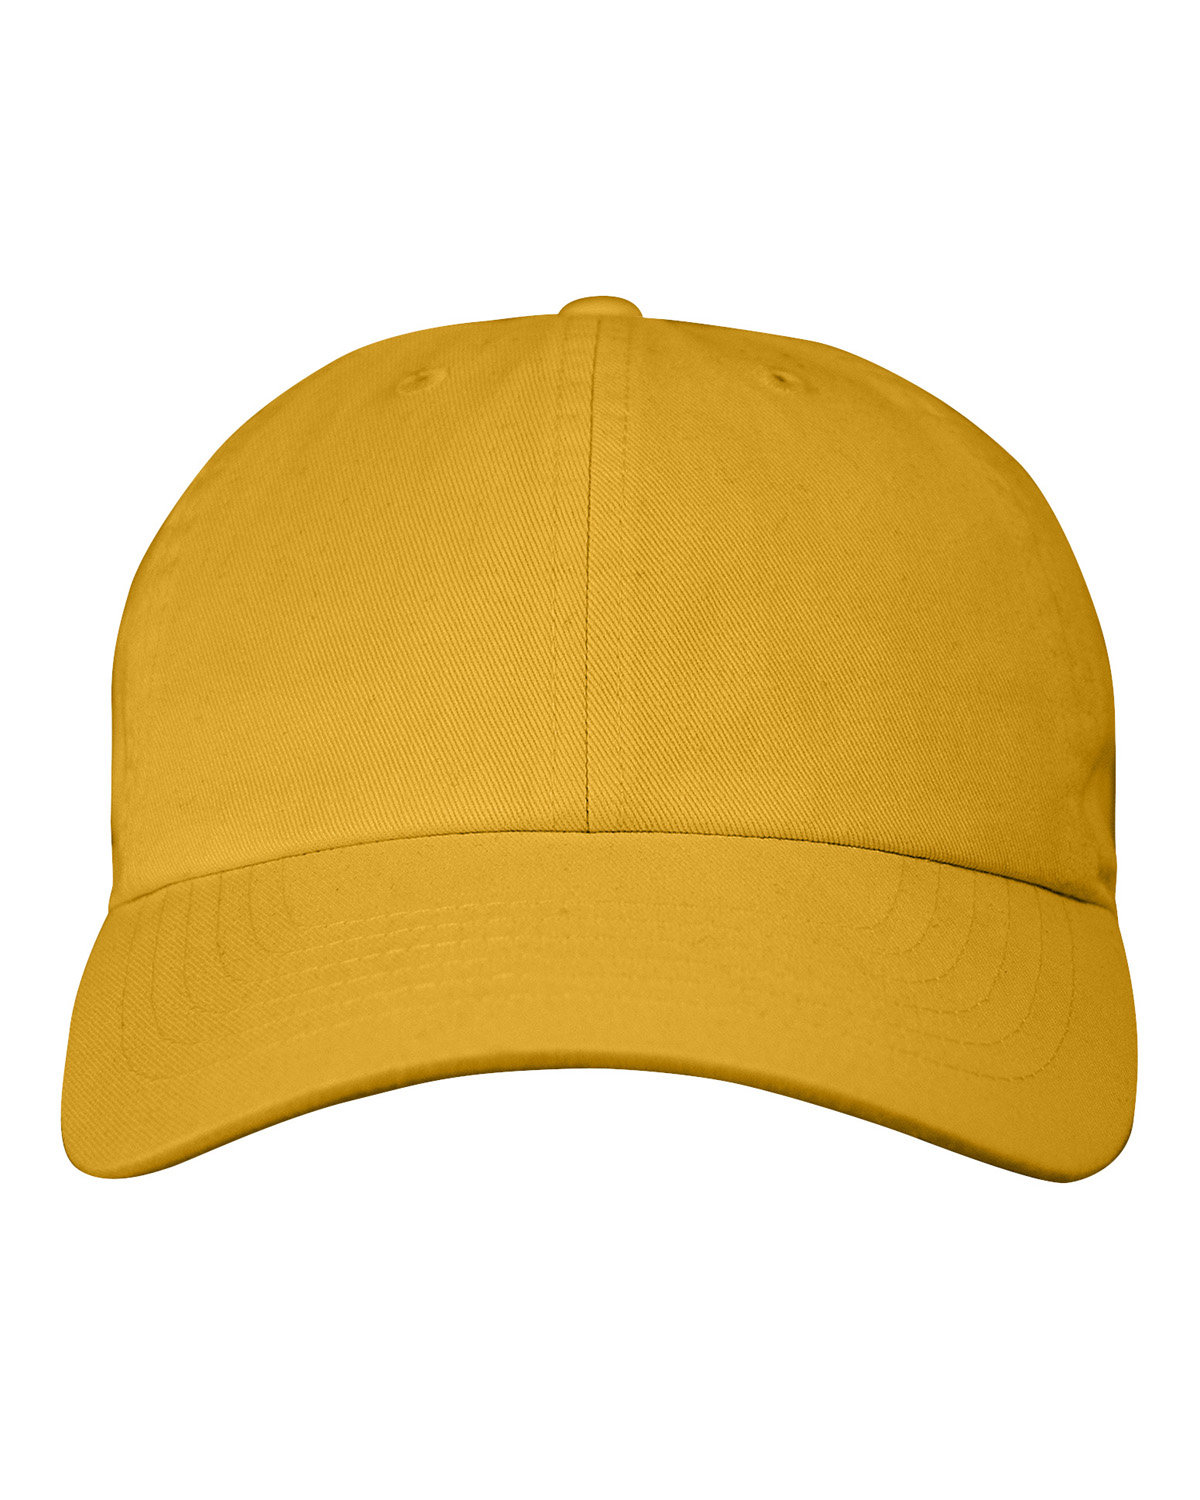 Champion Classic Washed Twill Cap C GOLD